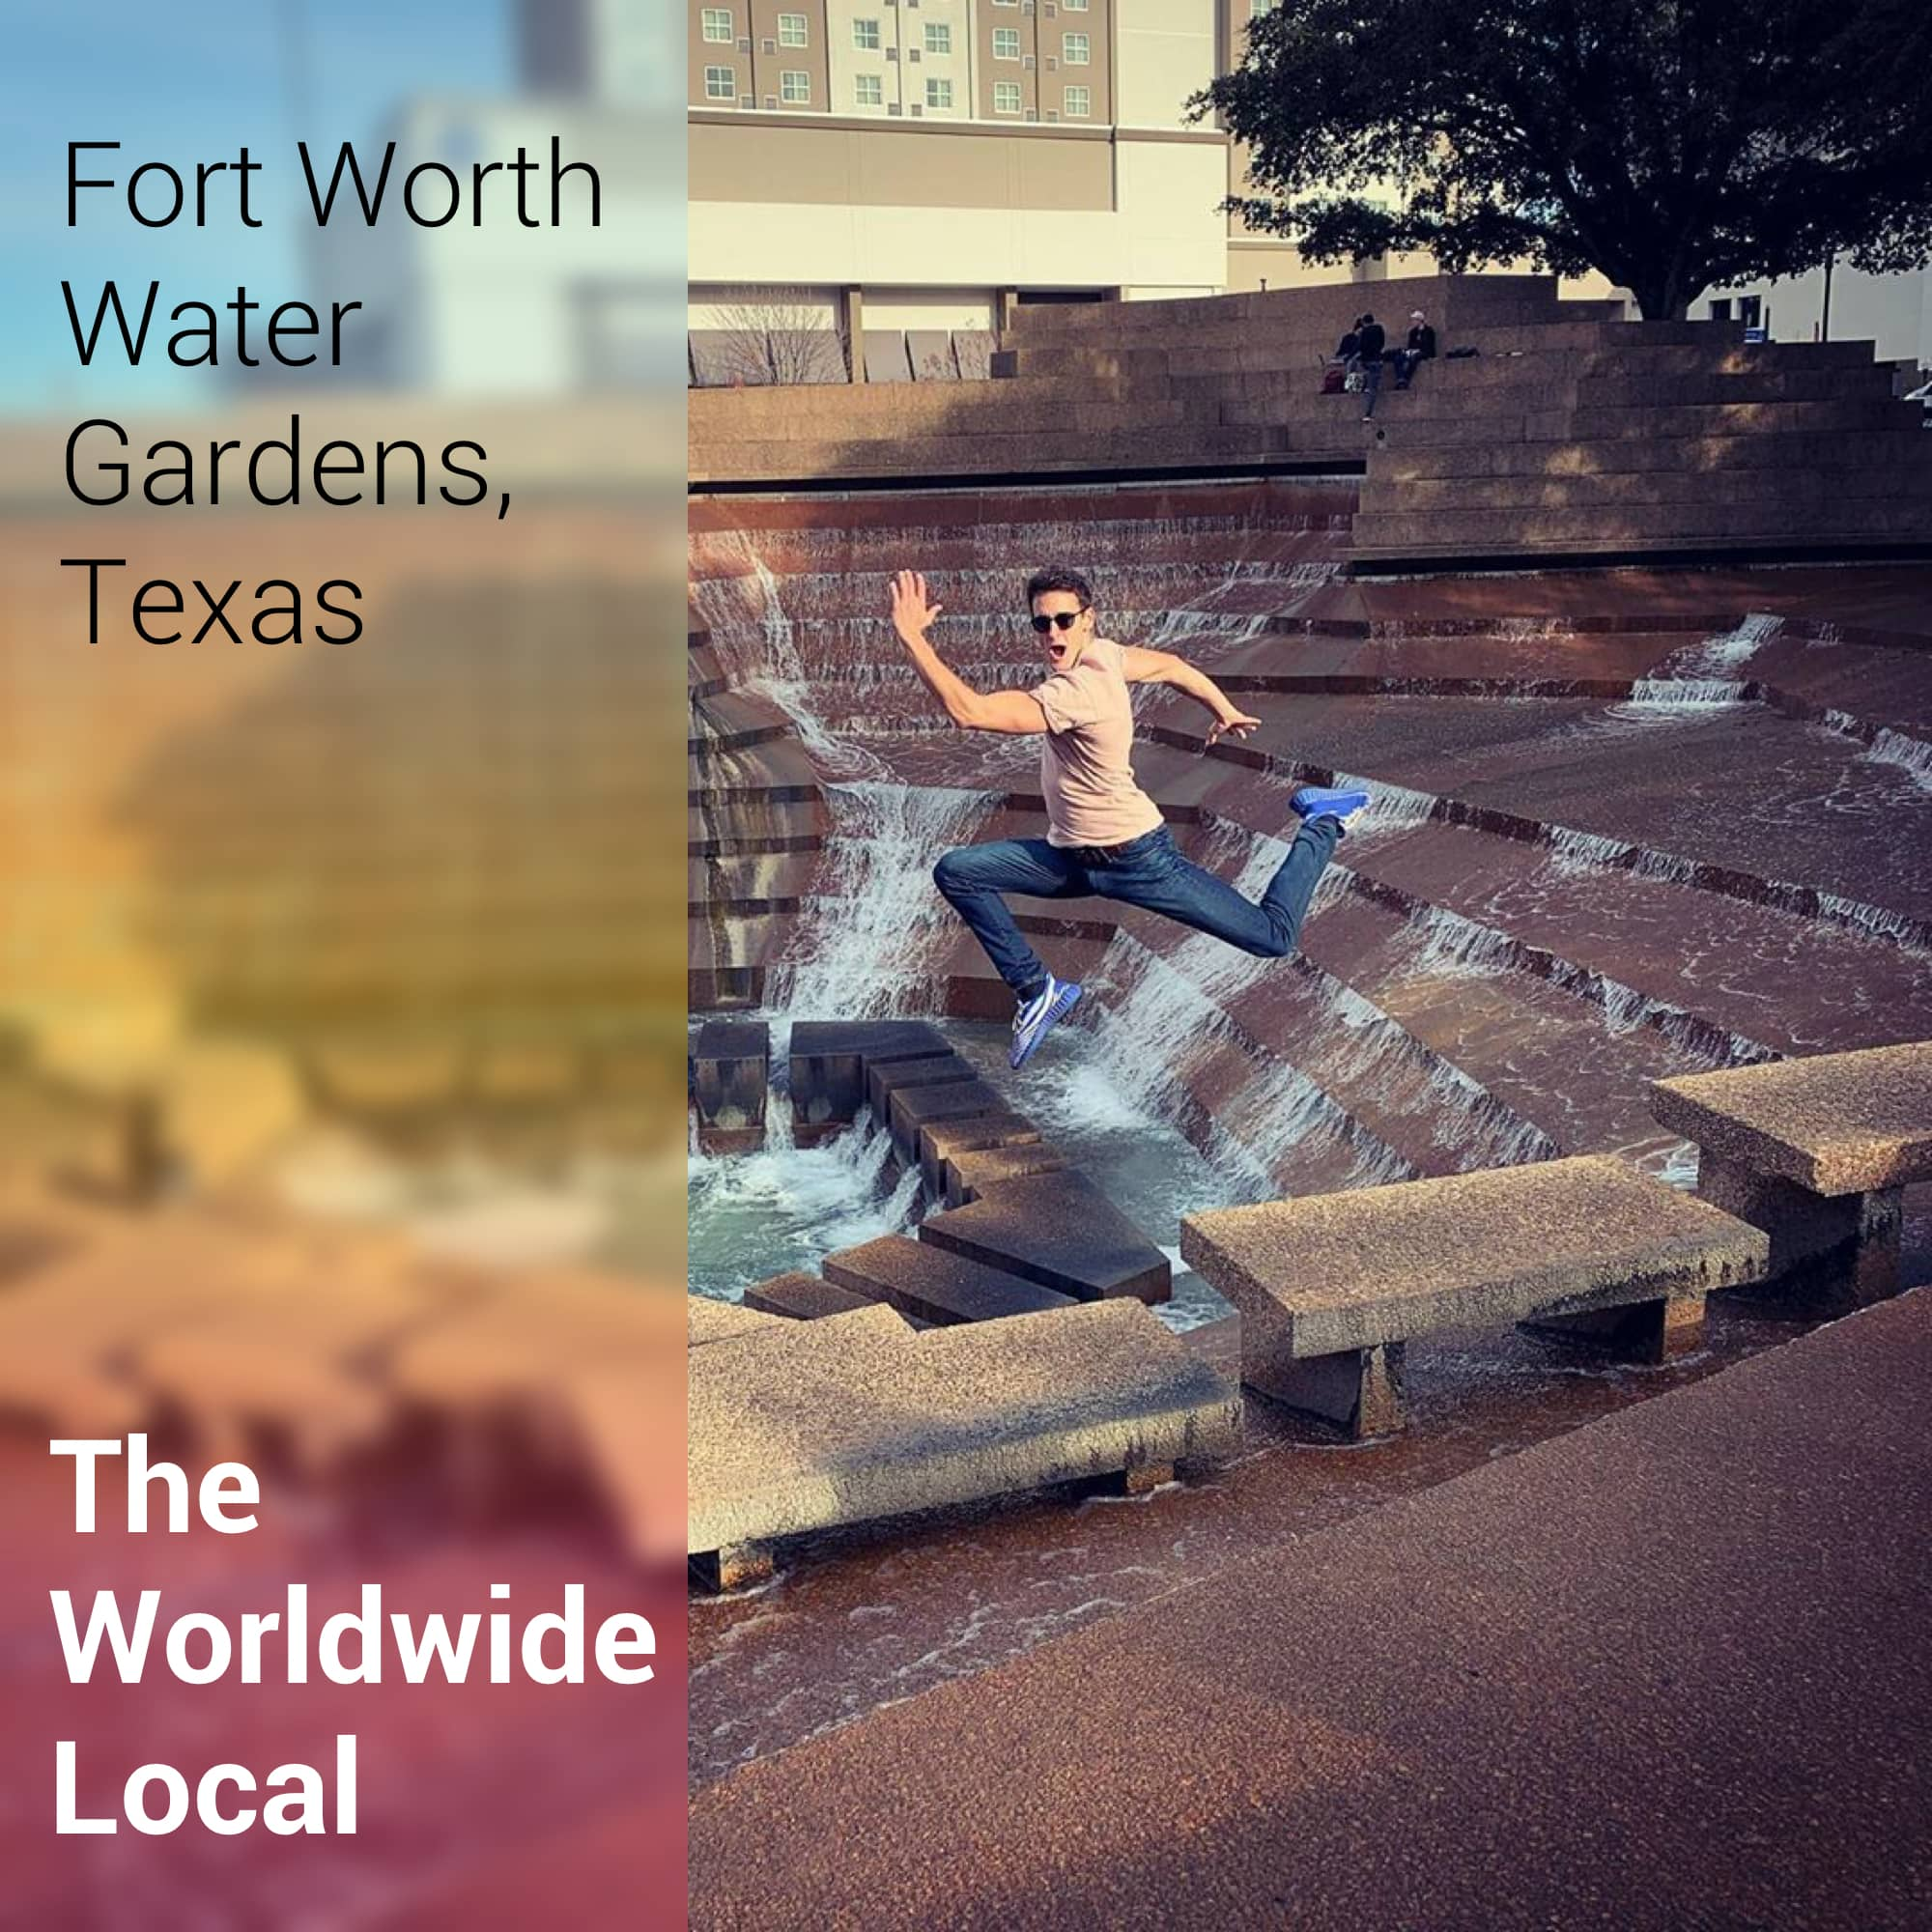 Fort Worth Gardens, Teksas